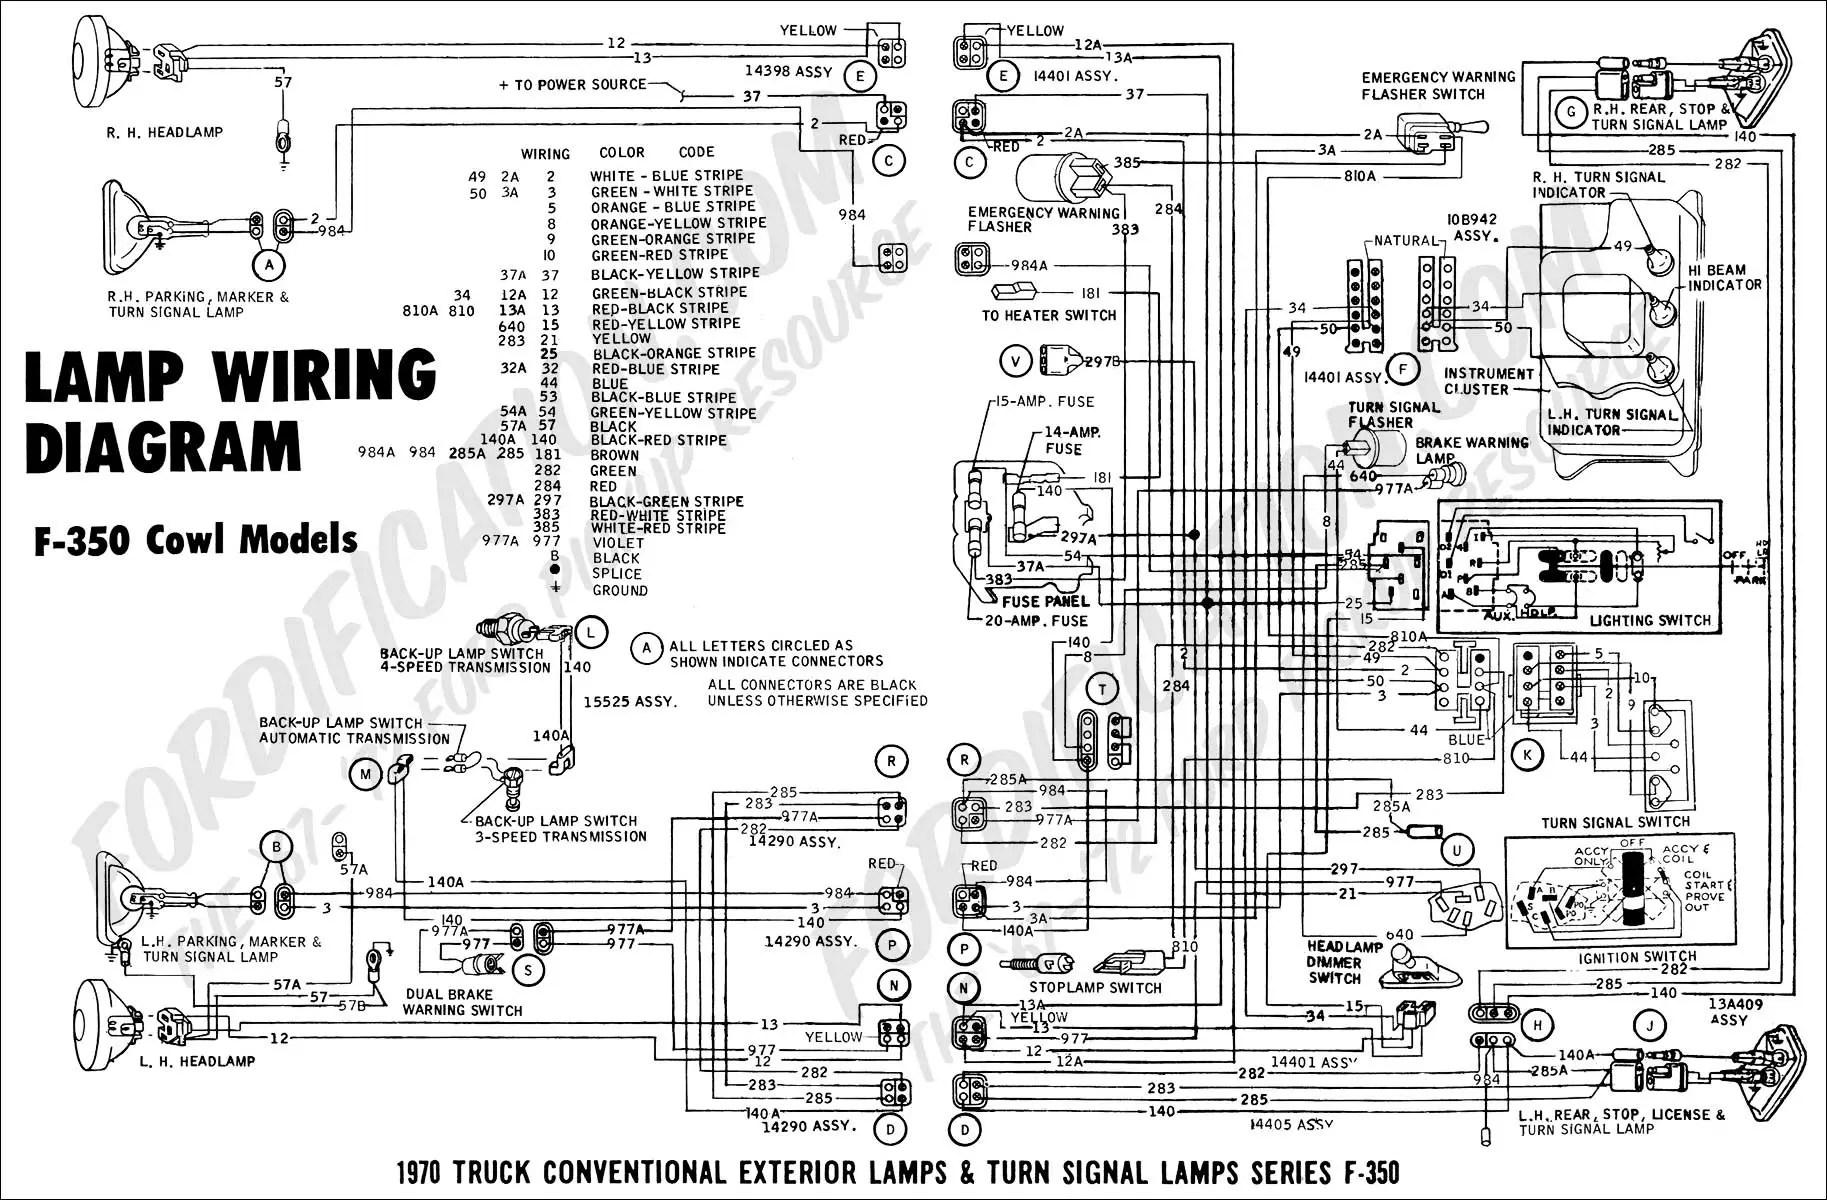 hight resolution of wiring diagram 70f350cowl lights01 resize 665 2c437 wiring diagram for 1970 73 nova